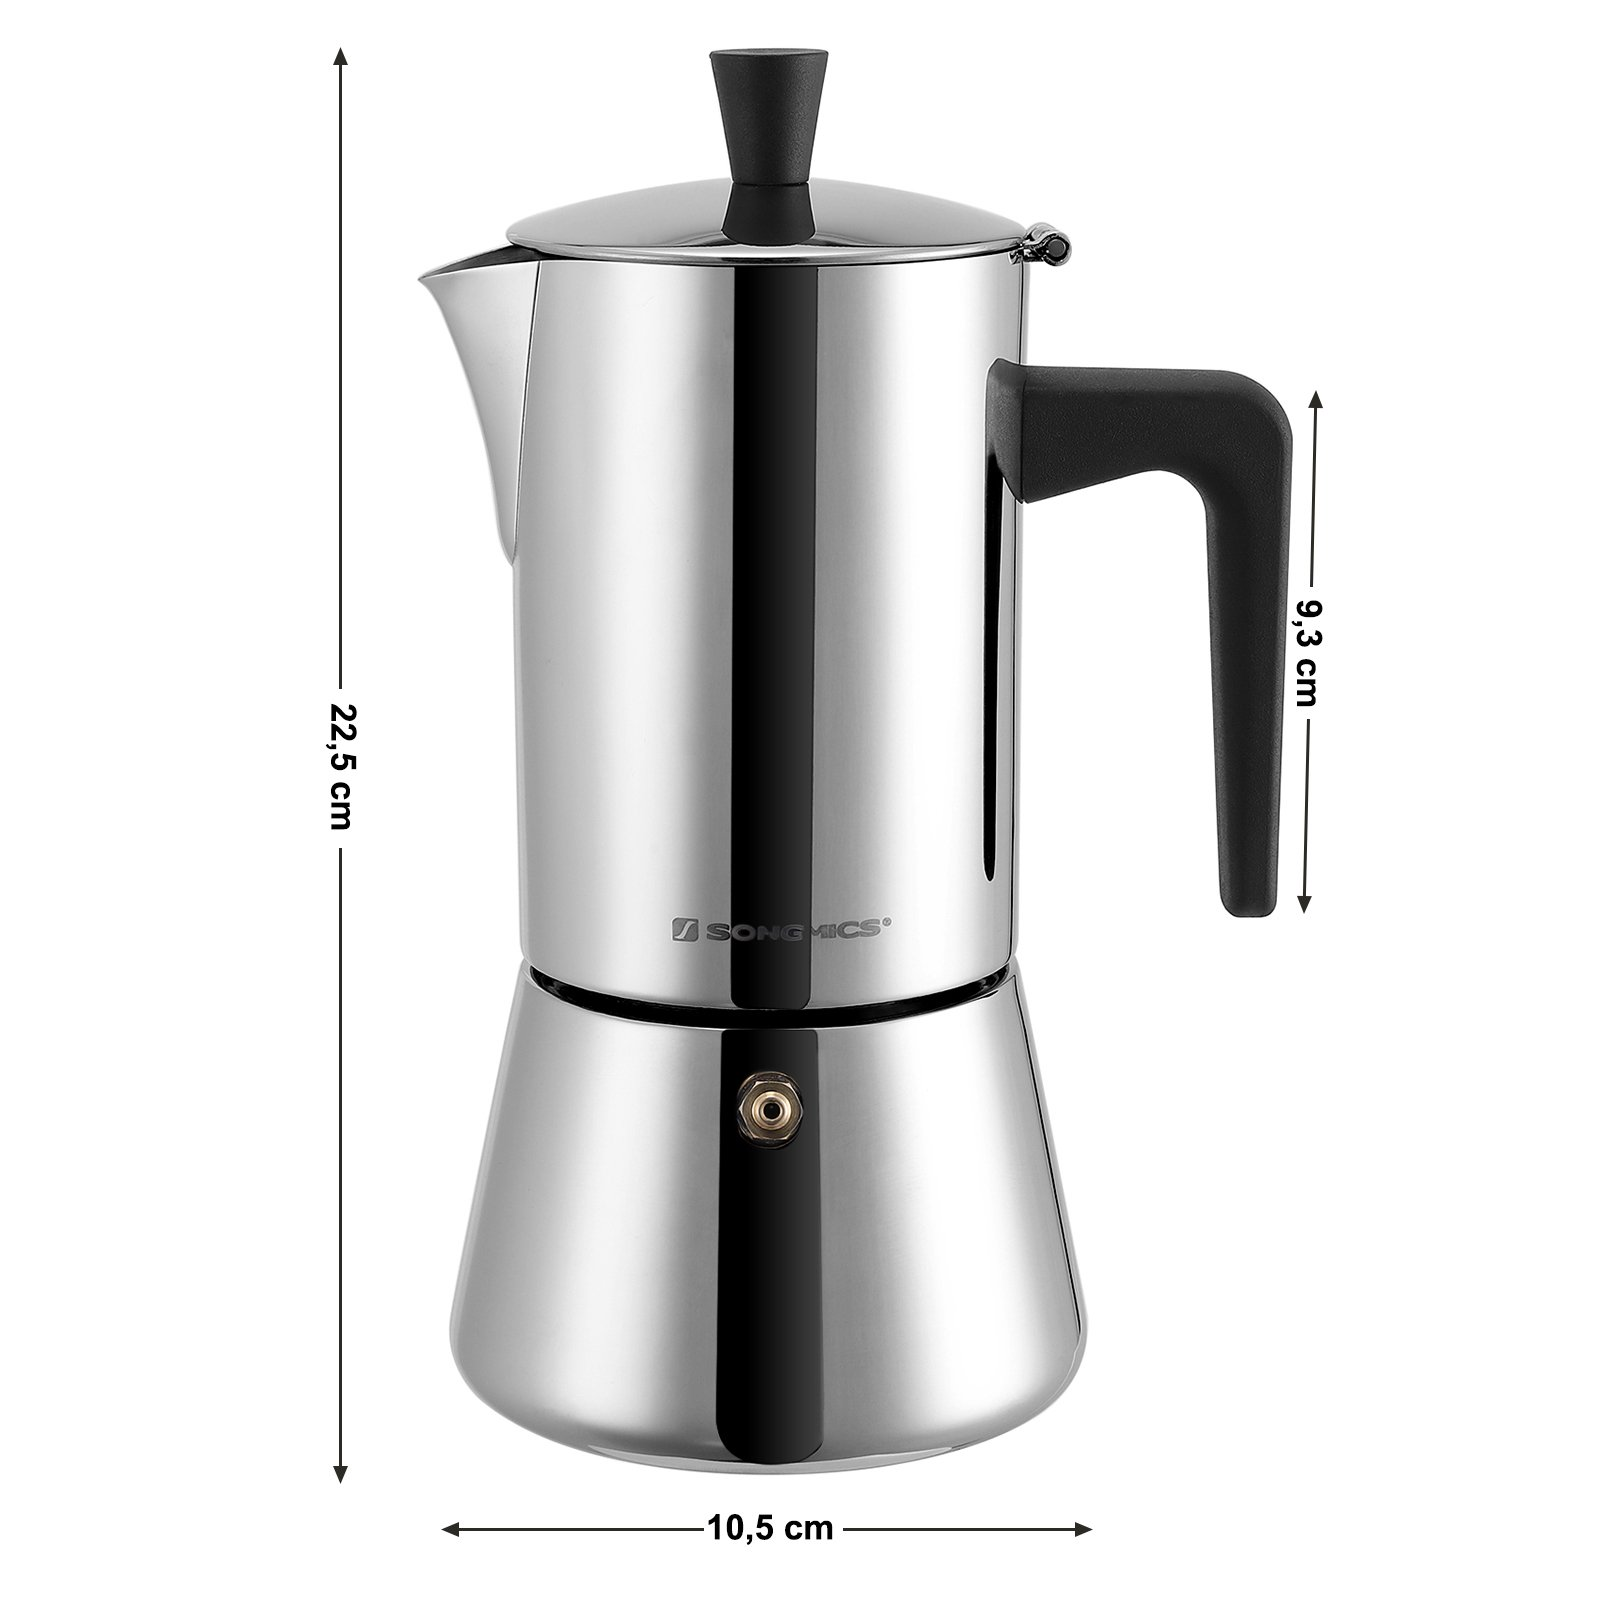 SONGMICS 6-Cup Stovetop Espresso Coffee Maker Moka Pot with Patented Valve, 18/8 Stainless Steel UKEM10BK by SONGMICS (Image #7)